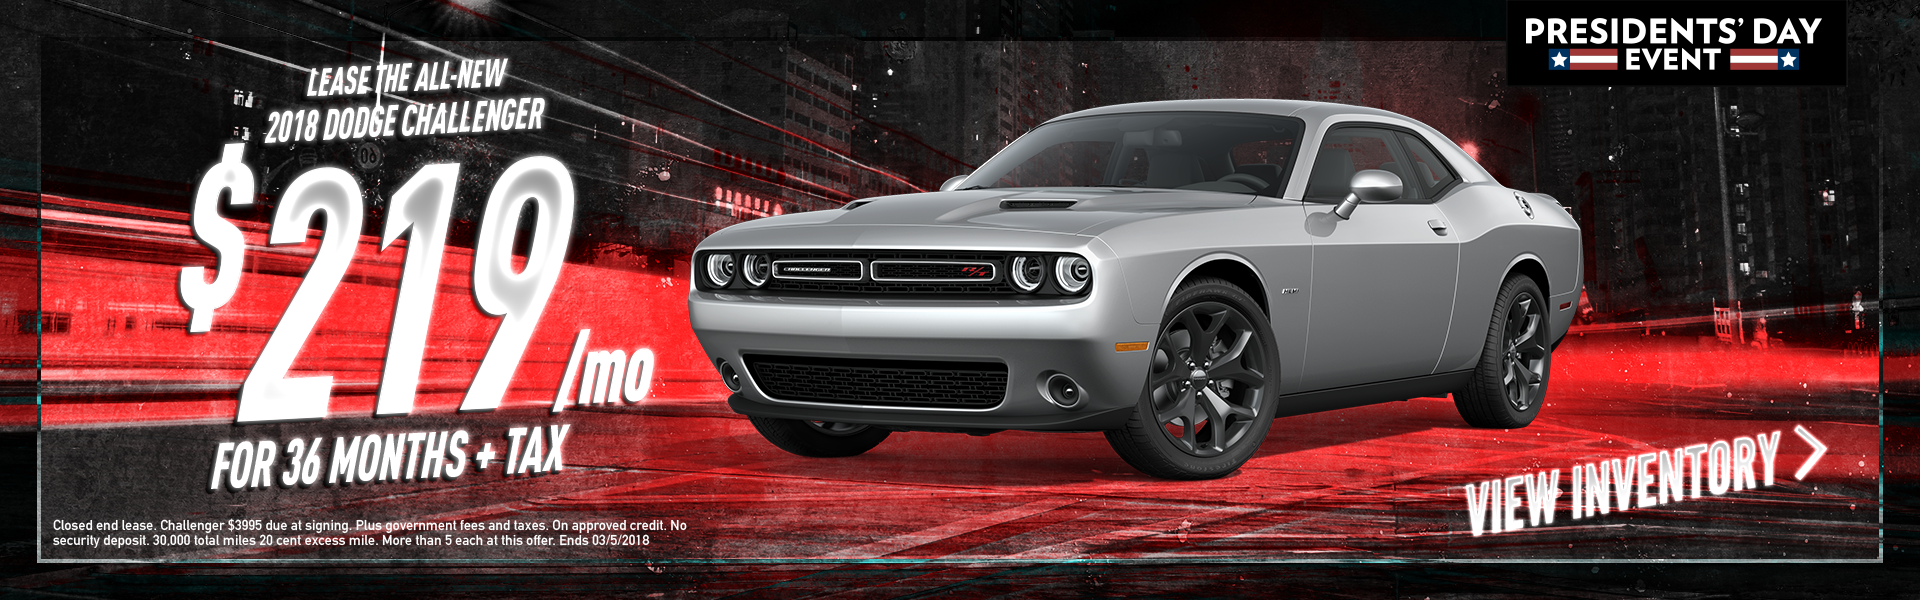 2018-dodge-challenger-rancho